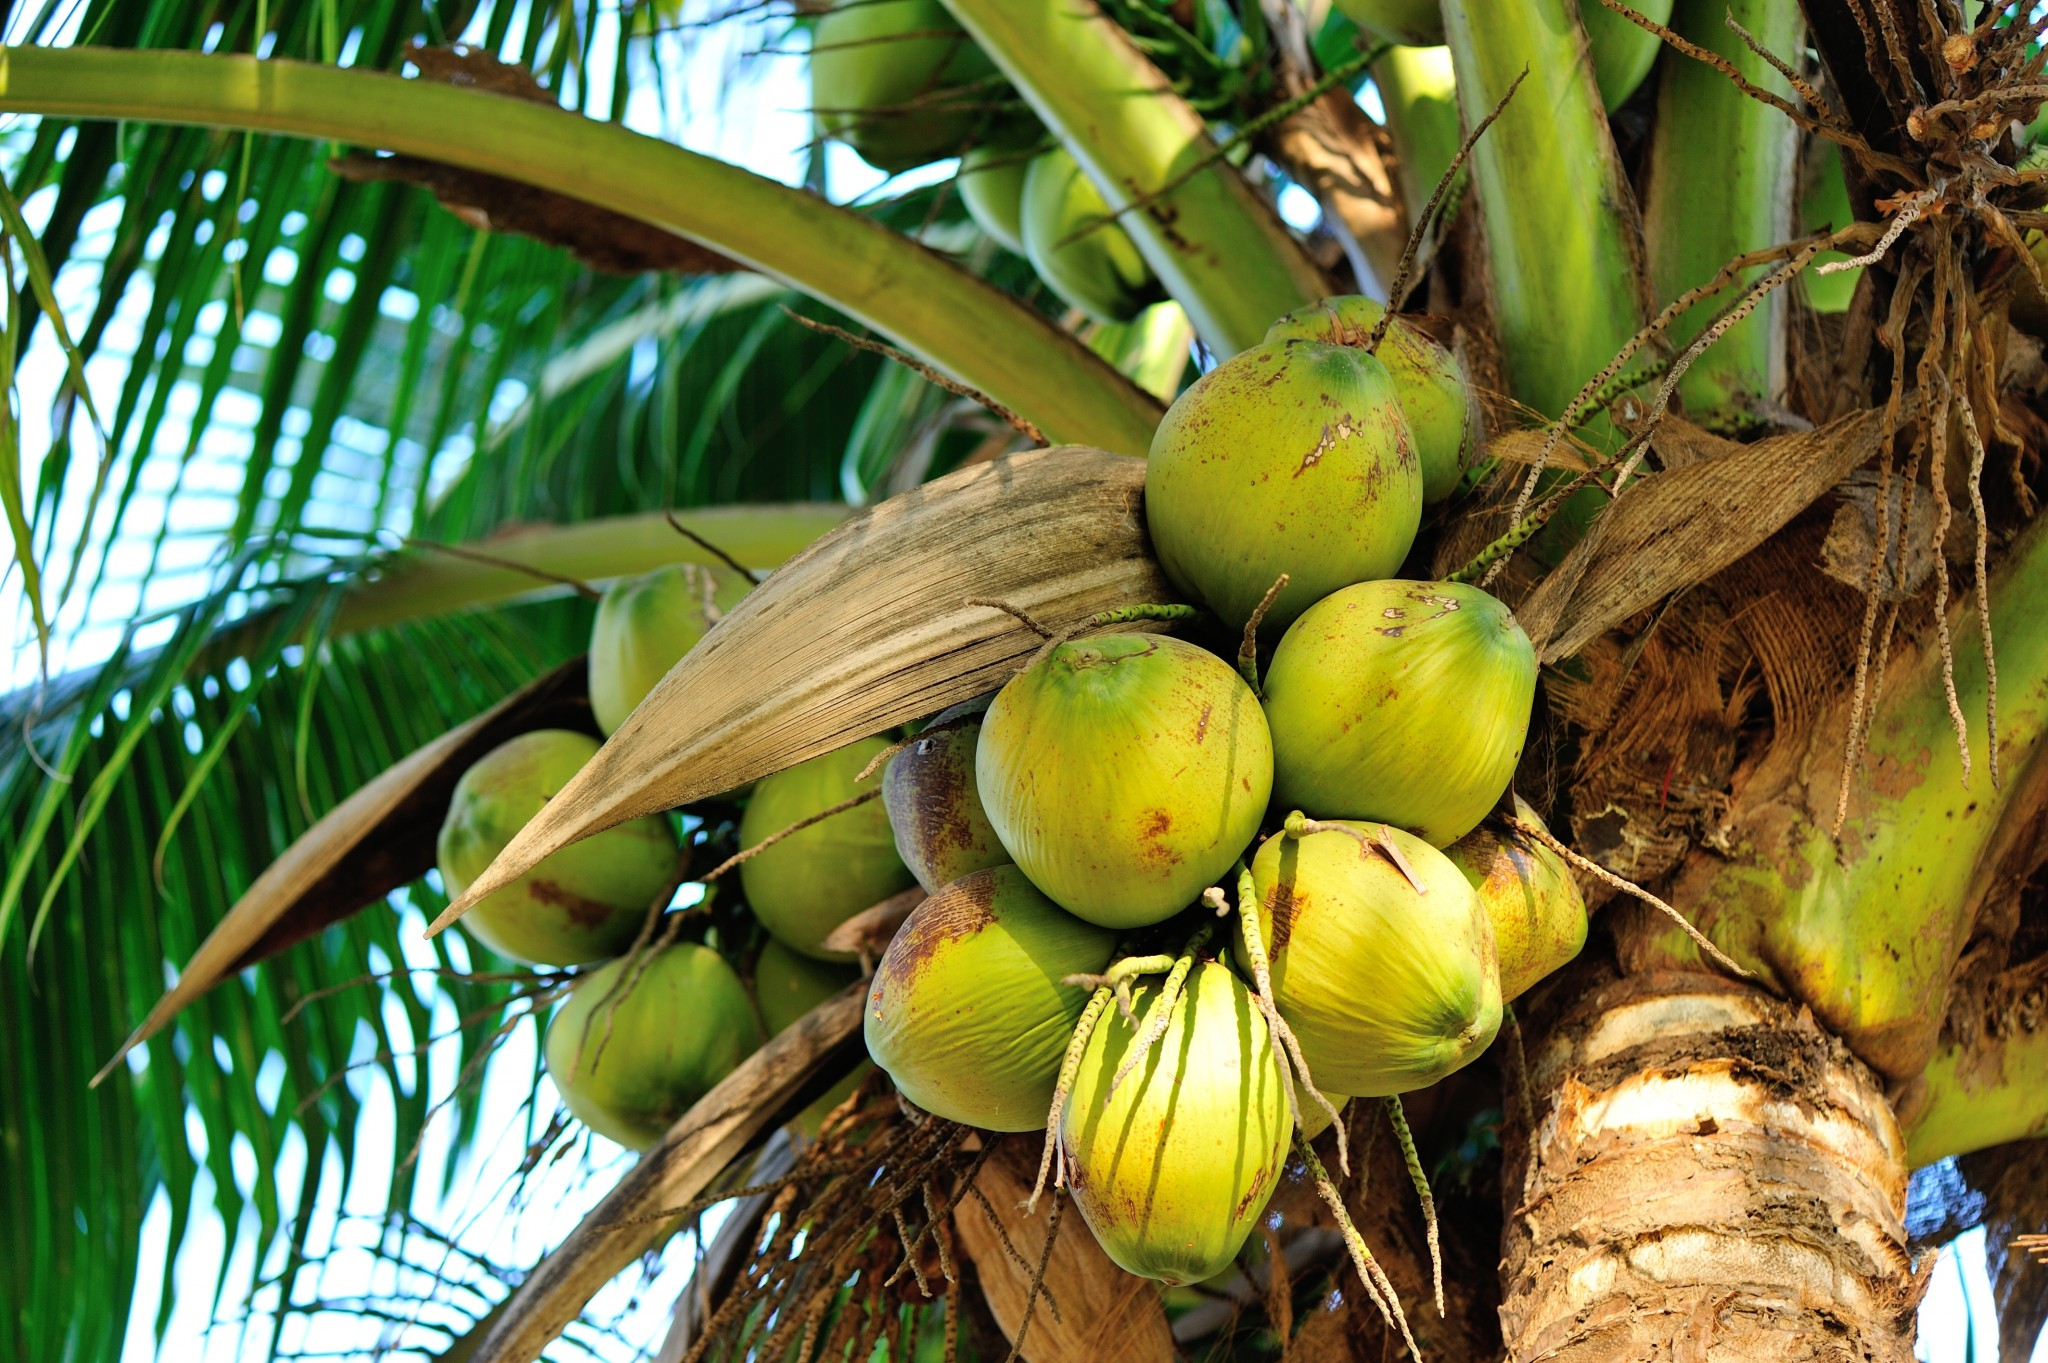 Interview: How can private companies contribute to improve Filipino coconut farmers' revenues while making their business more resilient?